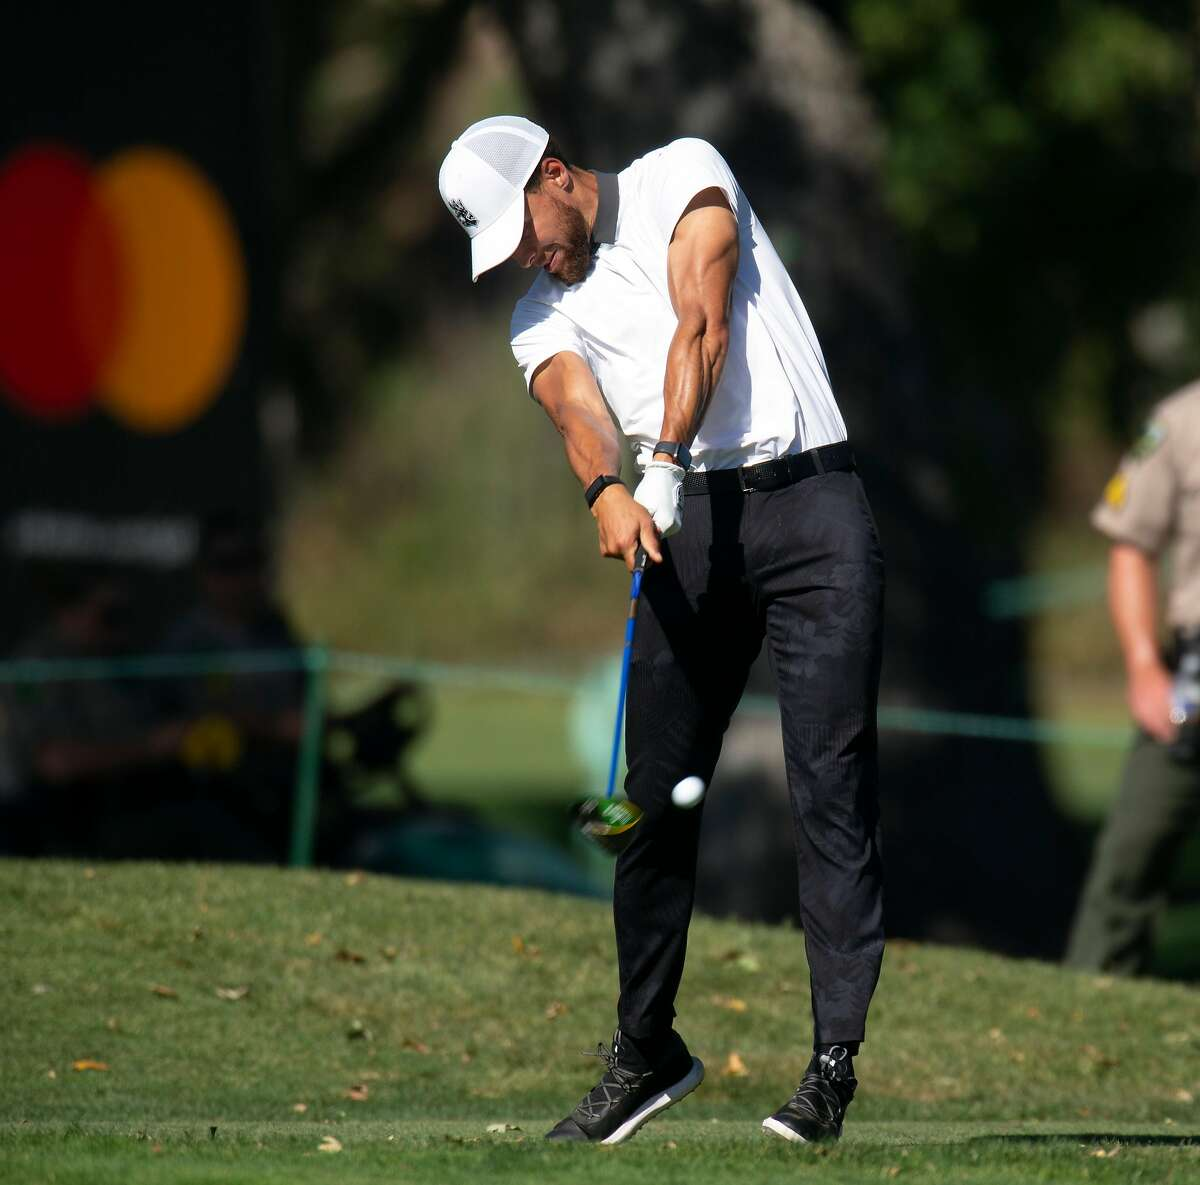 Golden State Warriors star Stephen Curry hits a driver on the 16th hole during the Safeway Open pro-am golf event on Wednesday, Sept. 25, 2019 in Napa, Calif.